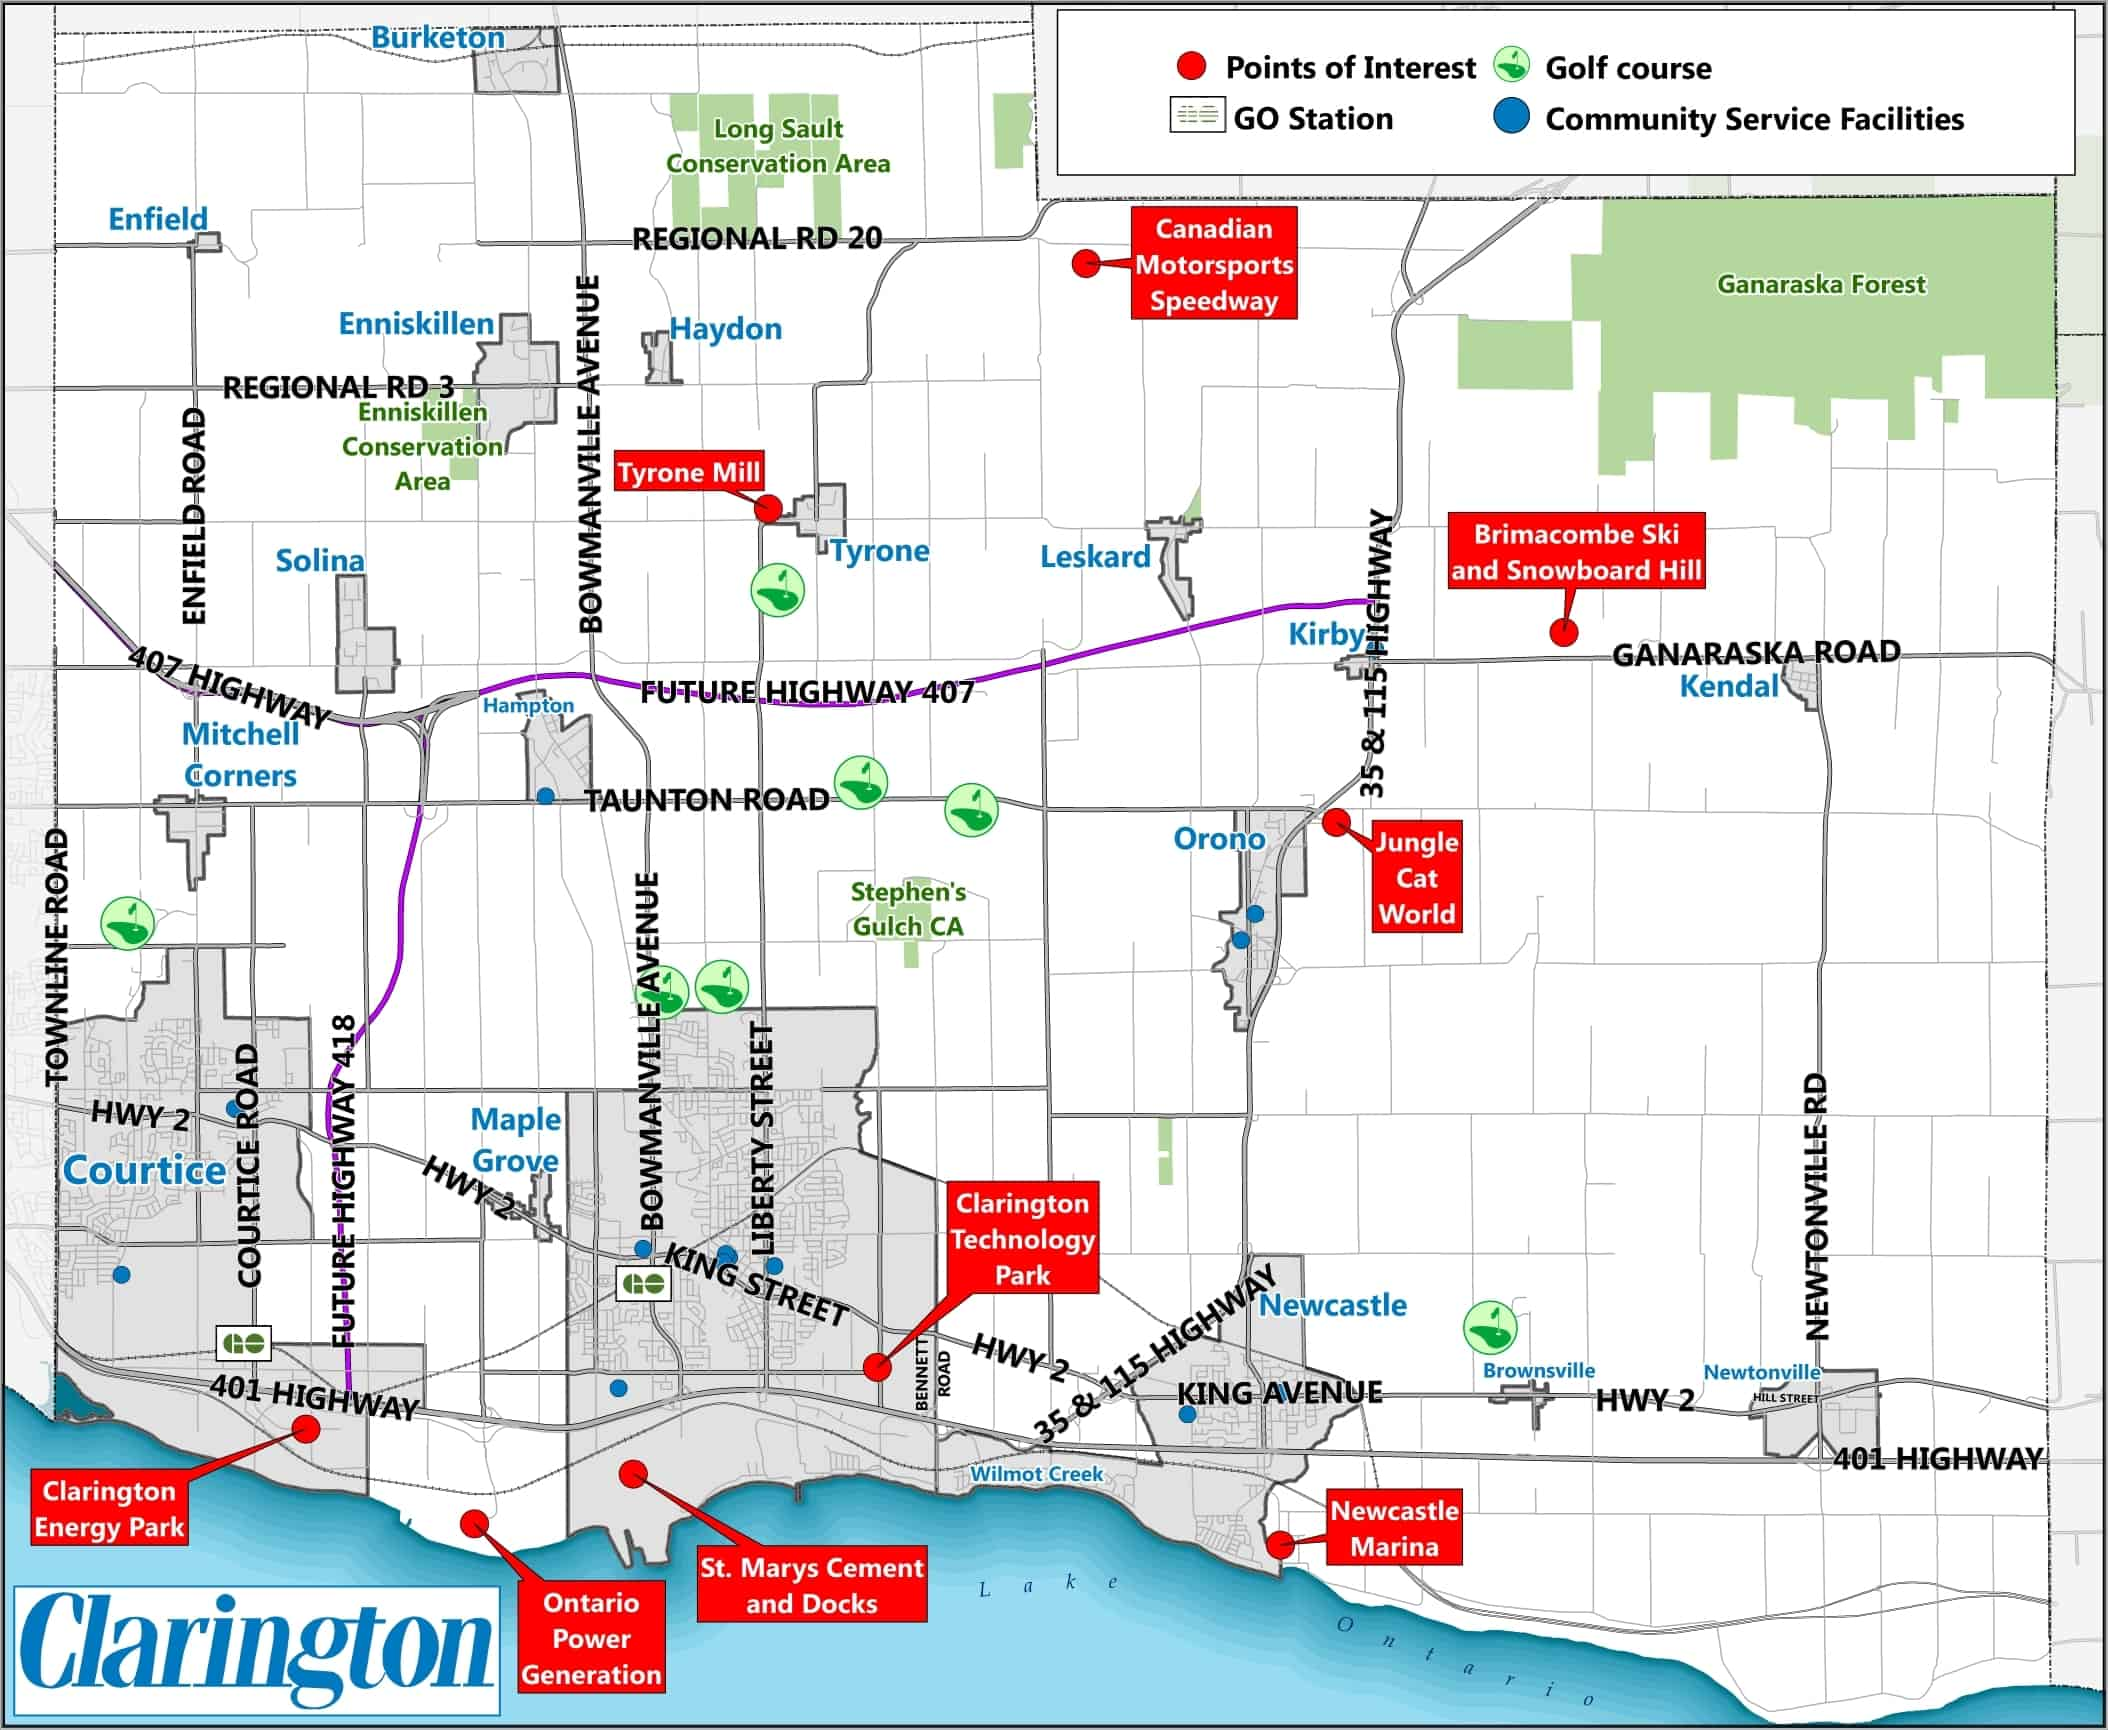 Map of Clarington | Clarington Board of Trade and Office of Economic  Map Of Toronto Canada on ontario canada, map of california, map of las vegas, map of new york, shopping toronto canada, map of philadelphia, map of istanbul turkey, map of hong kong, map of japan, map of ohio, cn tower toronto canada, provinces of canada, wonder mountain toronto canada, map of usa, weather toronto canada, landmarks toronto canada, road map toronto canada, hotels in toronto canada, house toronto canada, tourism toronto canada,